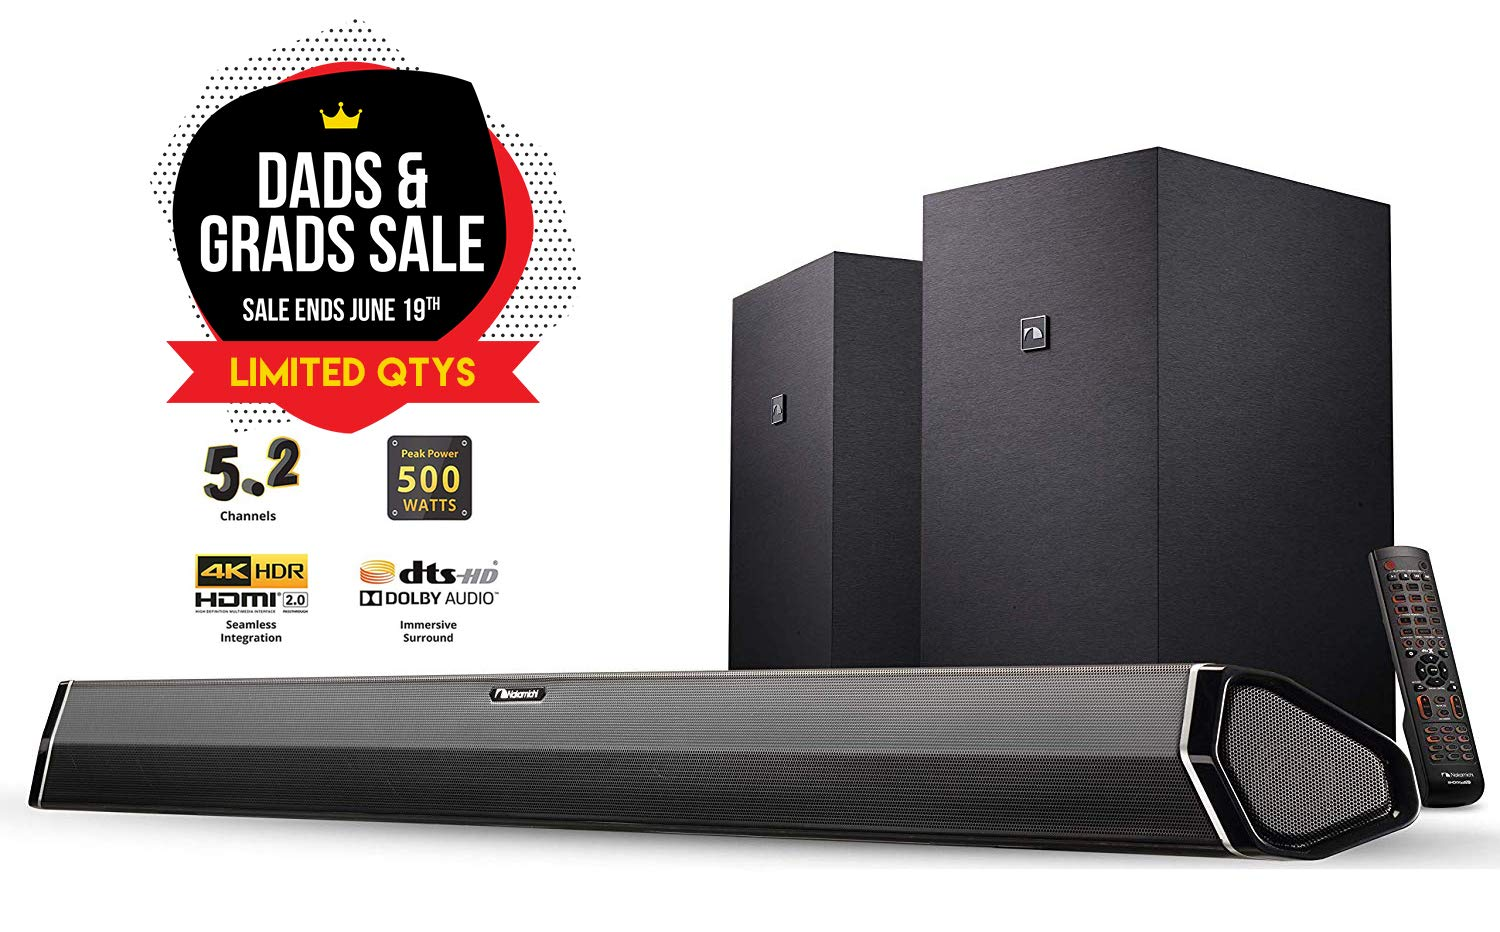 Nakamichi Shockwafe Plus 5.2Ch 500W 45-Inch Sound Bar with Dual 8'' Wireless Subwoofers